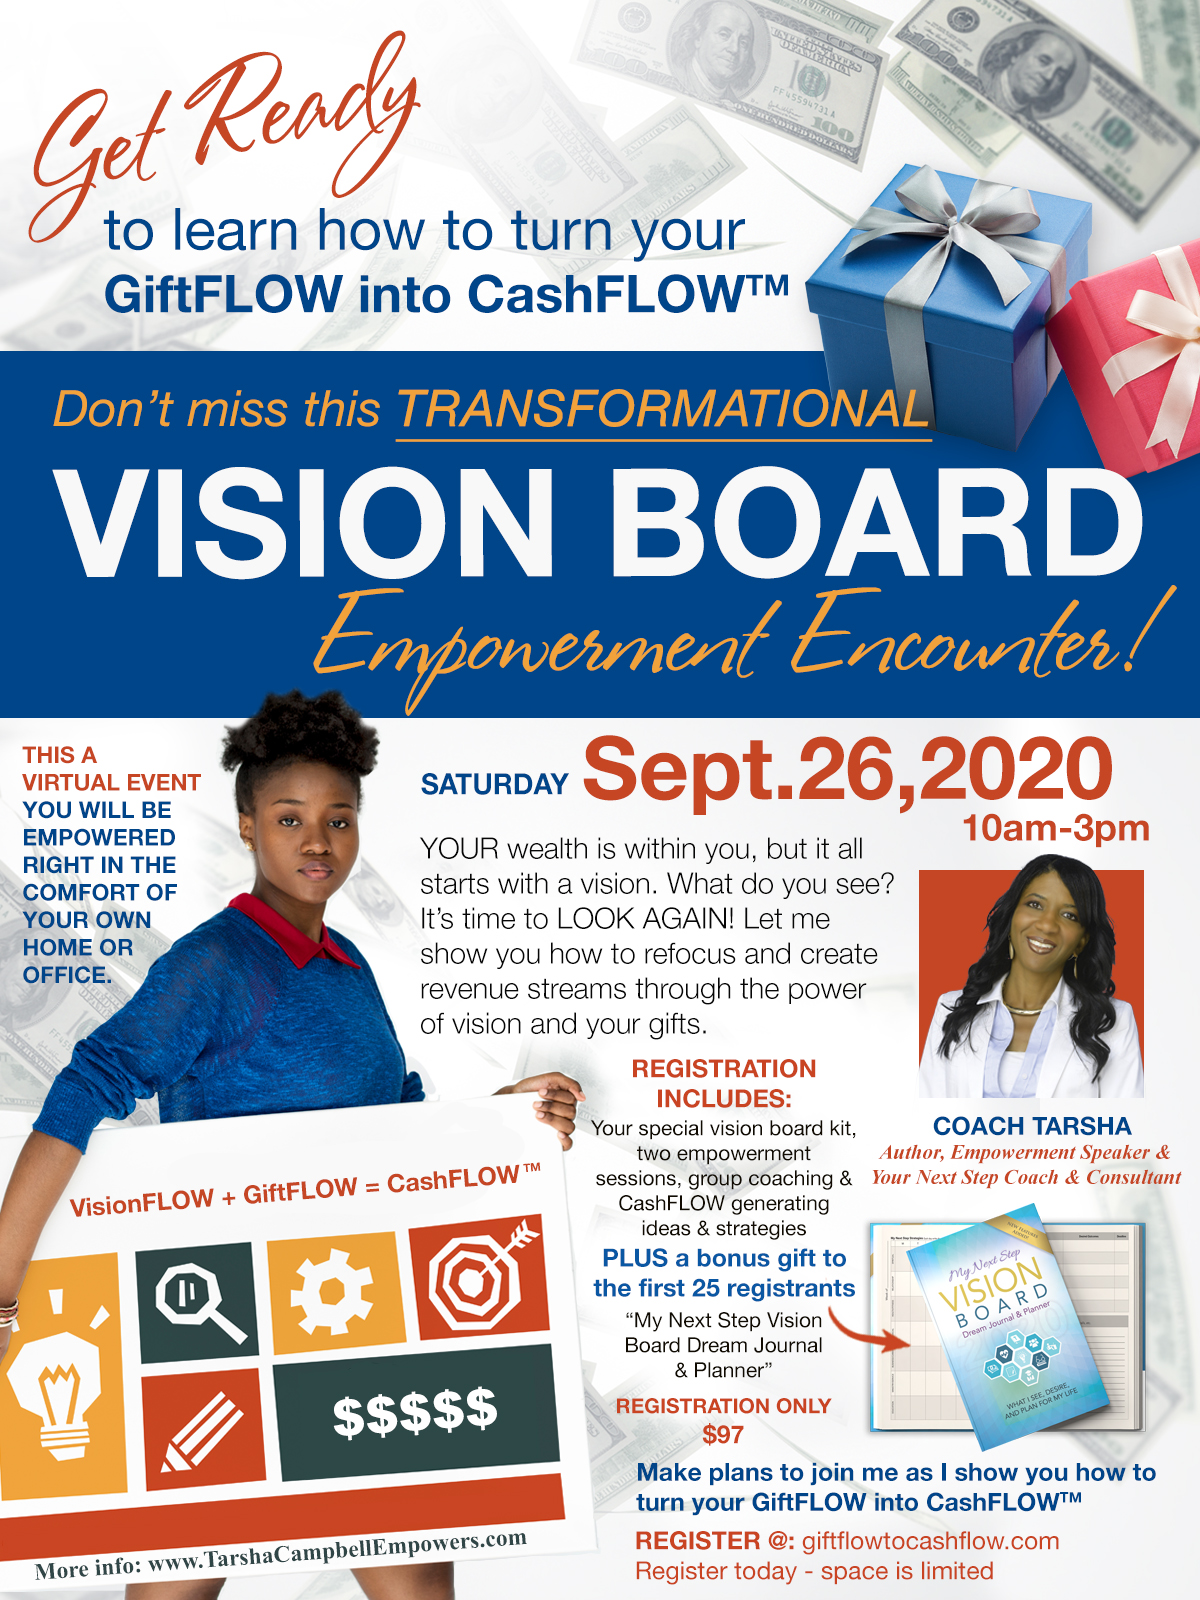 GiftFLOW to CashFLOW Vision Board Workshop_Sept2020